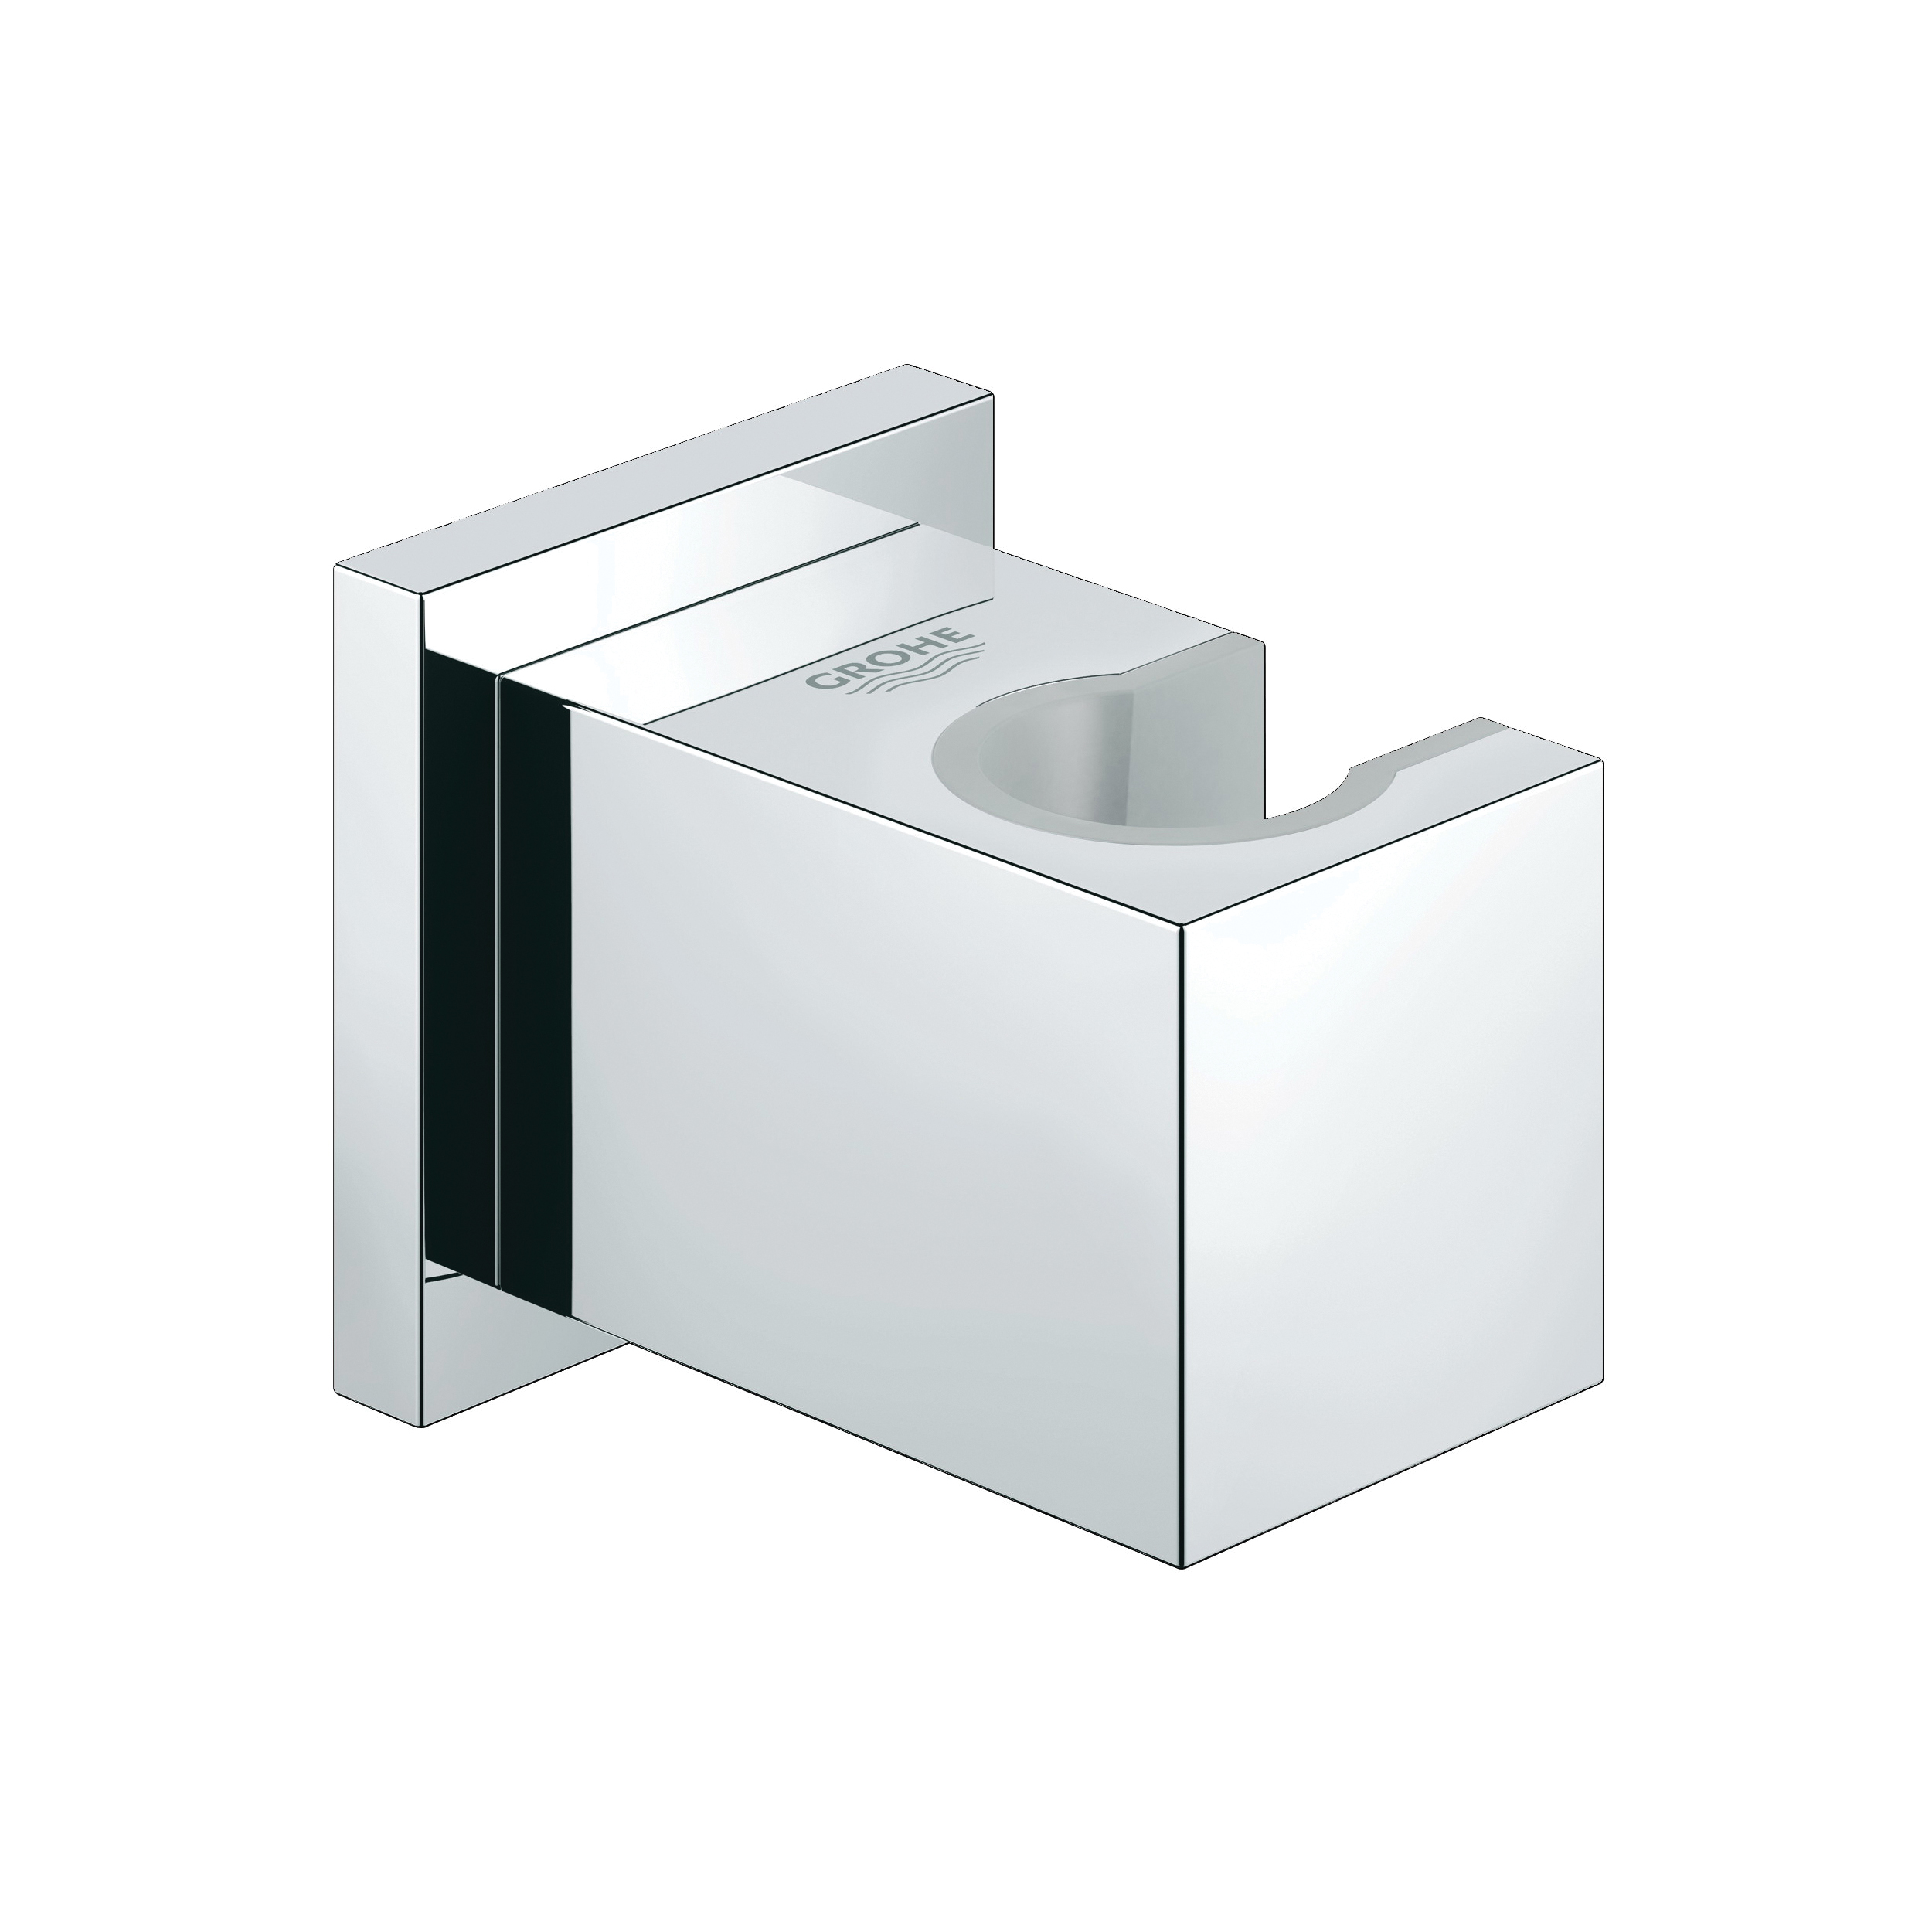 GROHE 27693000 Euphoria Cube Hand Shower Holder, Wall Mount, Import